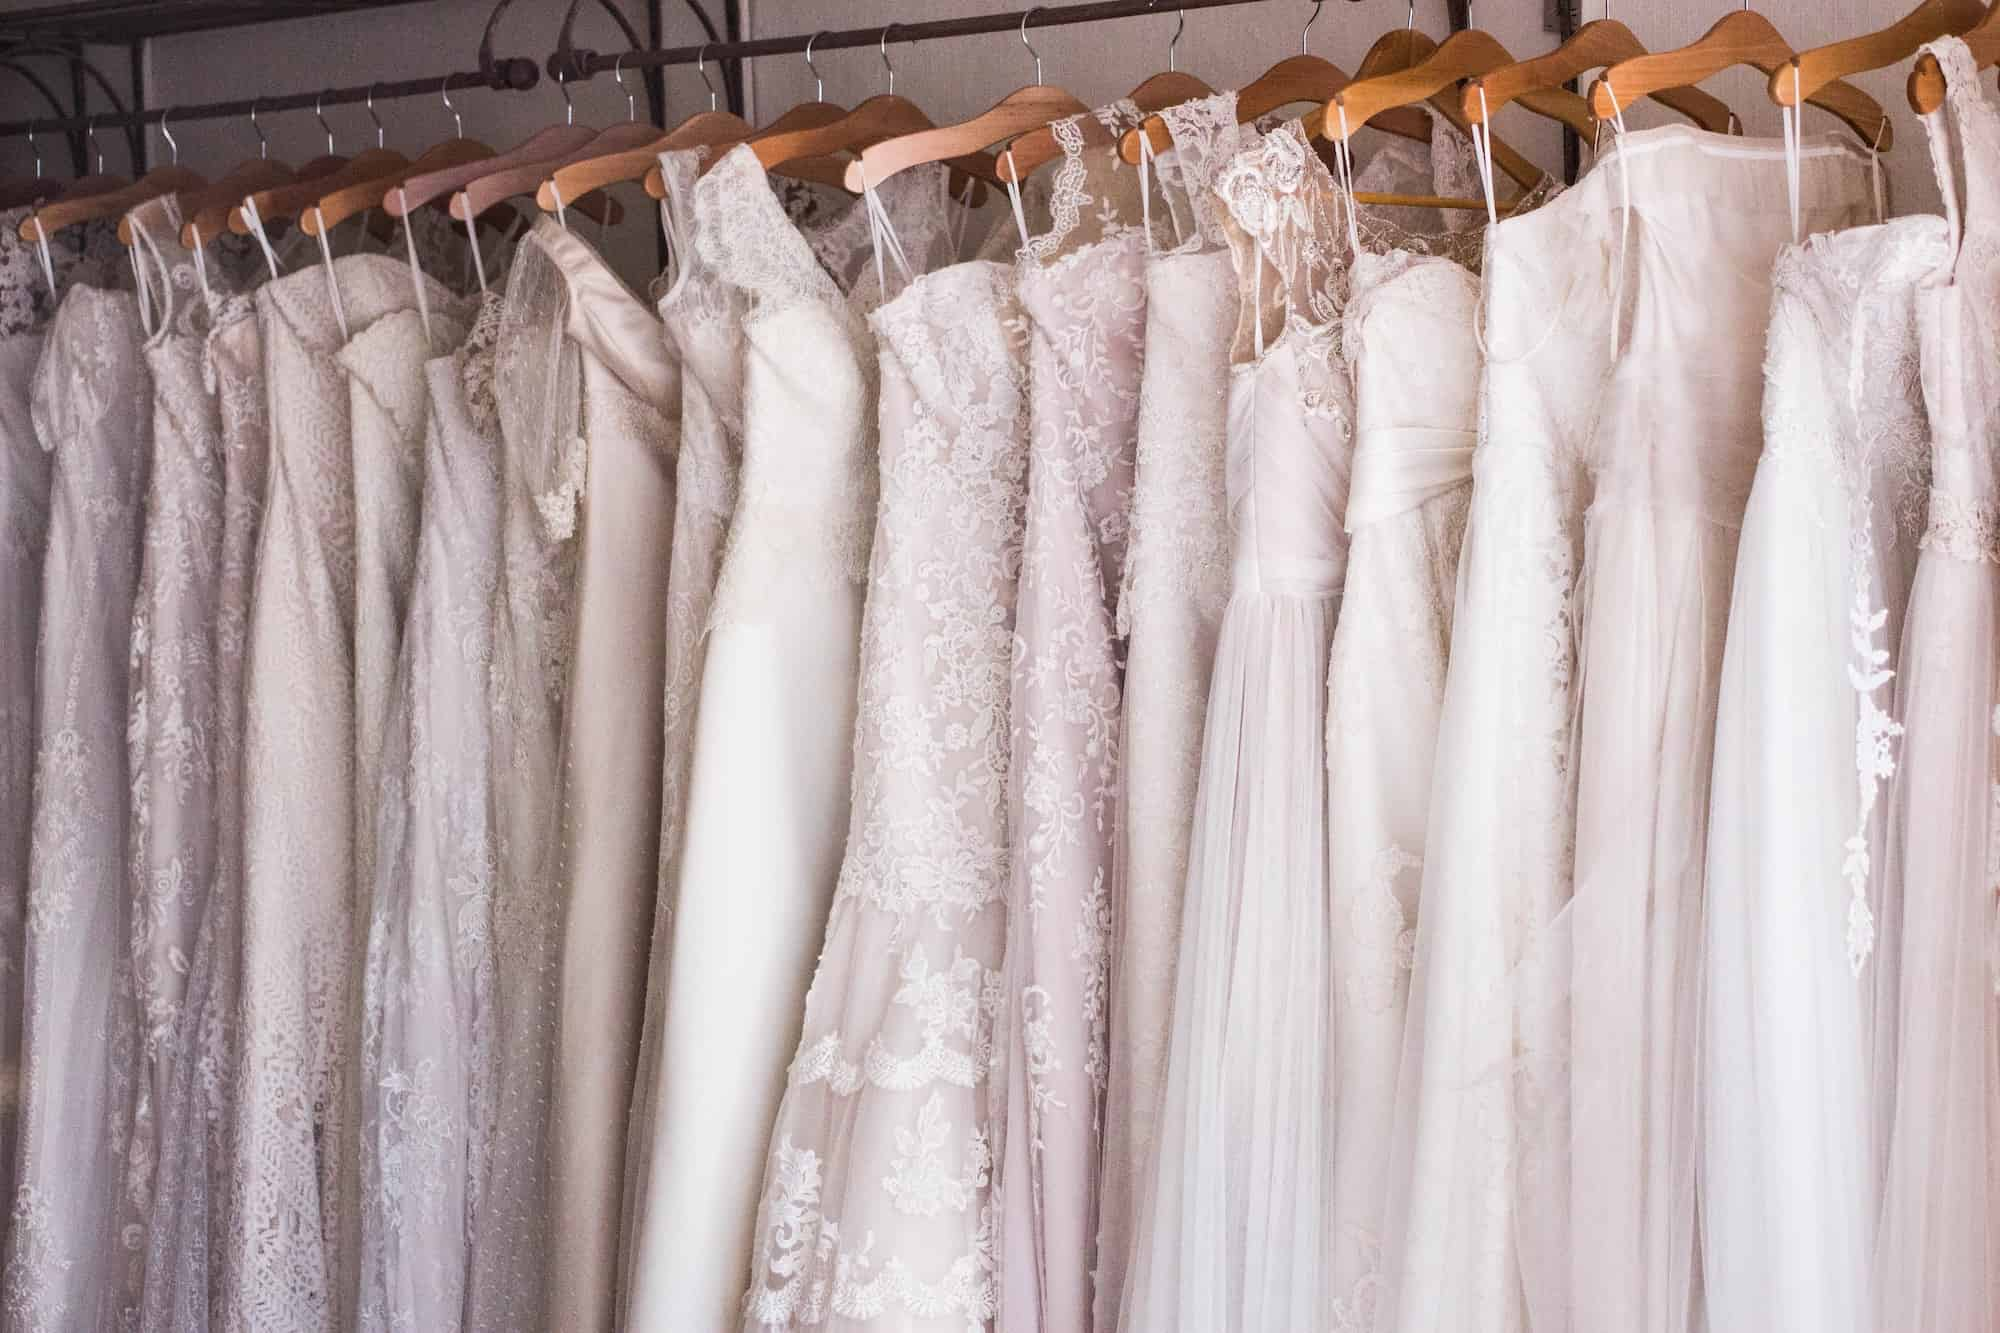 10 Gorgeous Designer Wedding Dresses and Bridal Gowns Under $1500 You Can Say Yes To